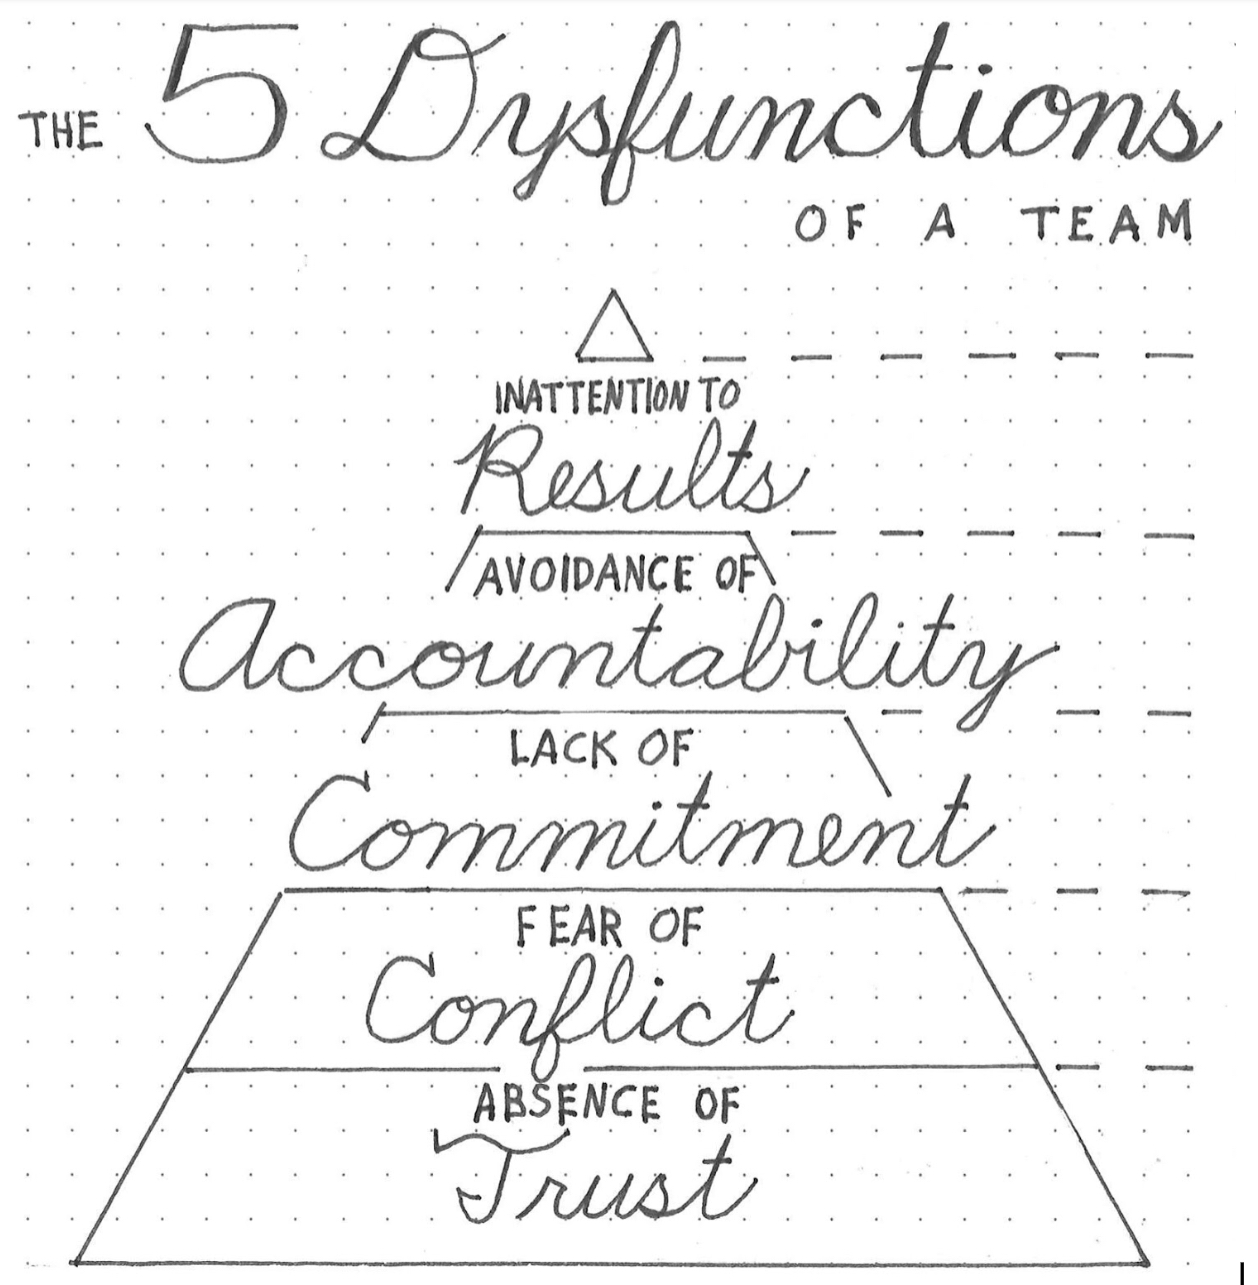 "The 5 Dysfunctions of a Team."" In black ink is drawn a pyramid split into five horizontal slices. The slice of base of the pyramid is labeled ""Absense of Trust."" The slice above it reads ""Fear of Conflict,"" then ""Lack of Committment,"" then ""Avoidance of Accountability."" Finally, the slice at top of the pyramid reads ""Inattention to Results."